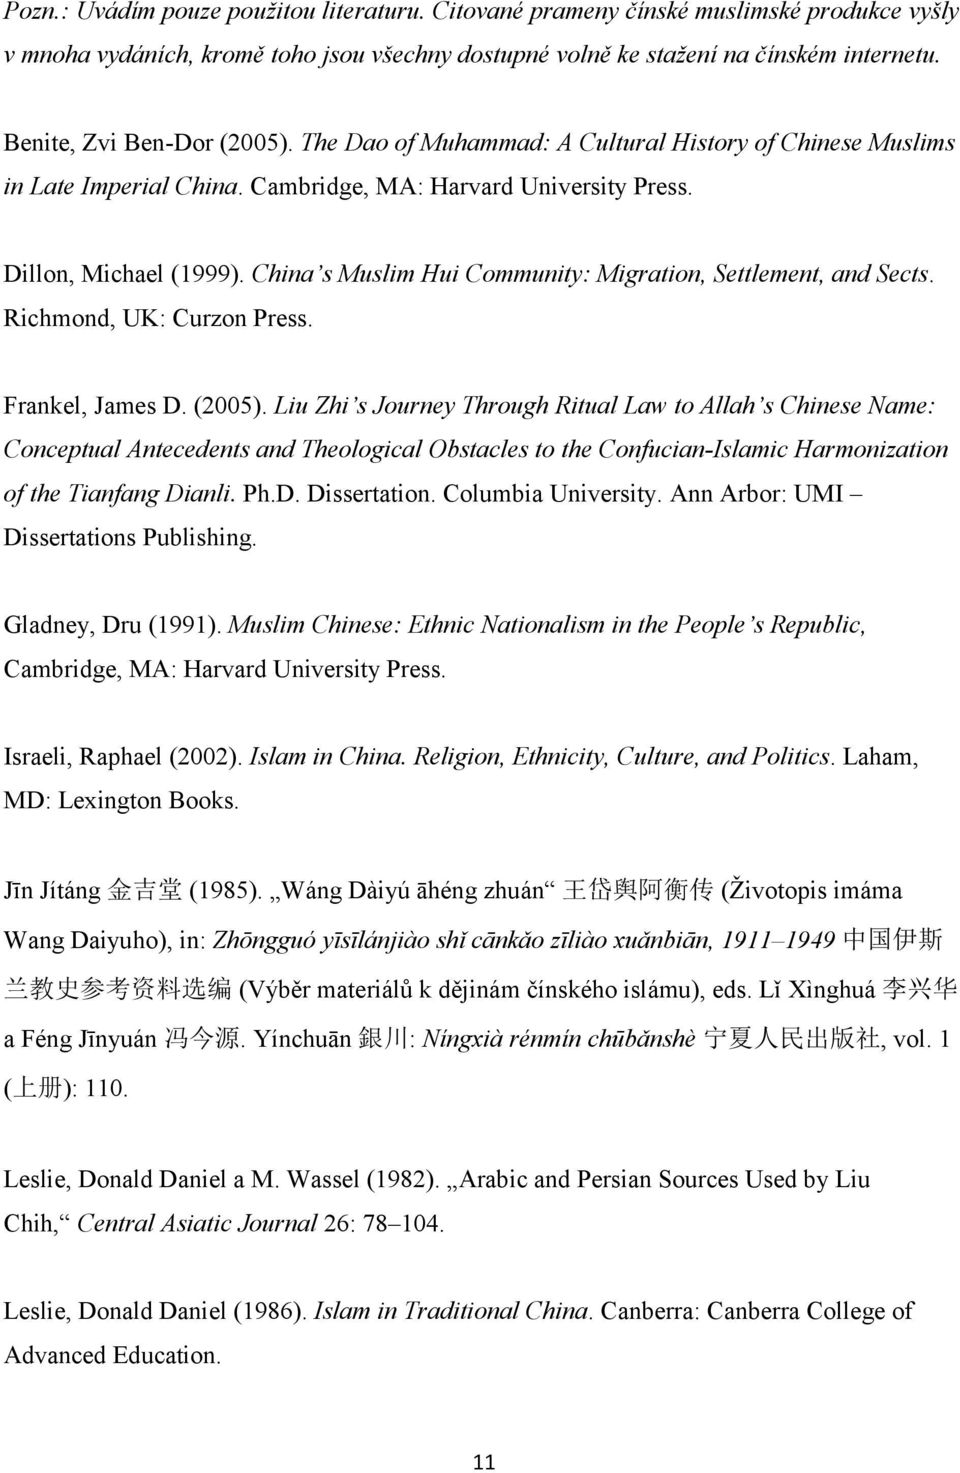 China s Muslim Hui Community: Migration, Settlement, and Sects. Richmond, UK: Curzon Press. Frankel, James D. (2005).